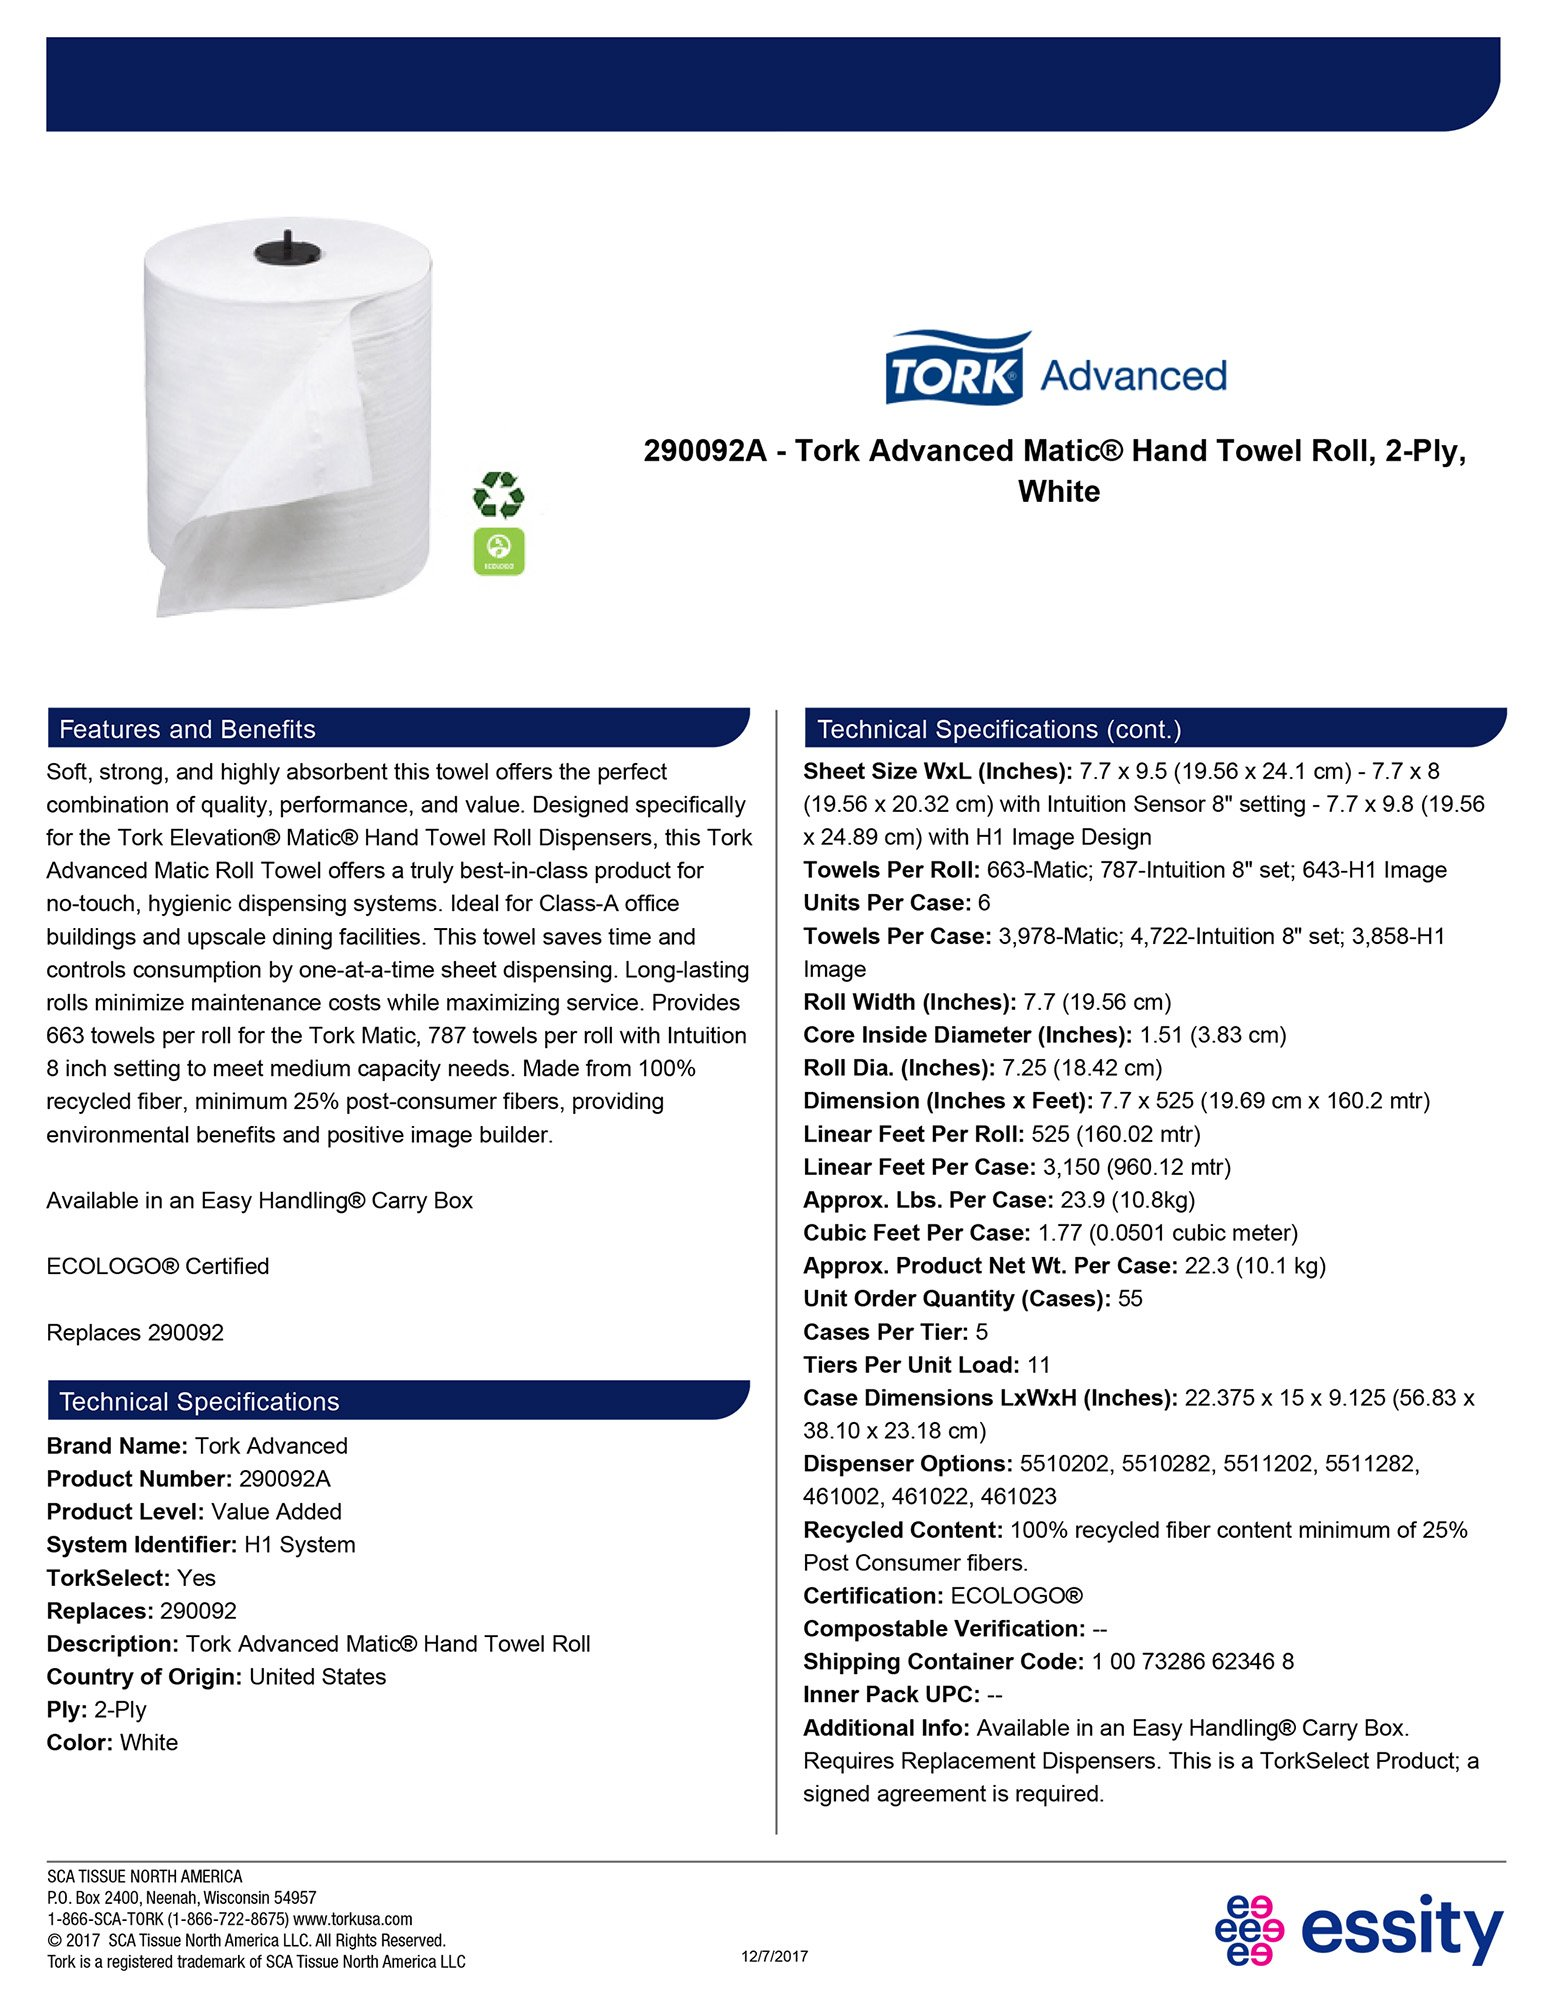 Tork 290092A Advanced Matic Paper Hand Towel Roll, 2-Ply, 7.7'' Width x 525' Length, White, (Case of 6 Rolls, 525 Feet per Roll, 3,150 Feet) by Tork (Image #4)